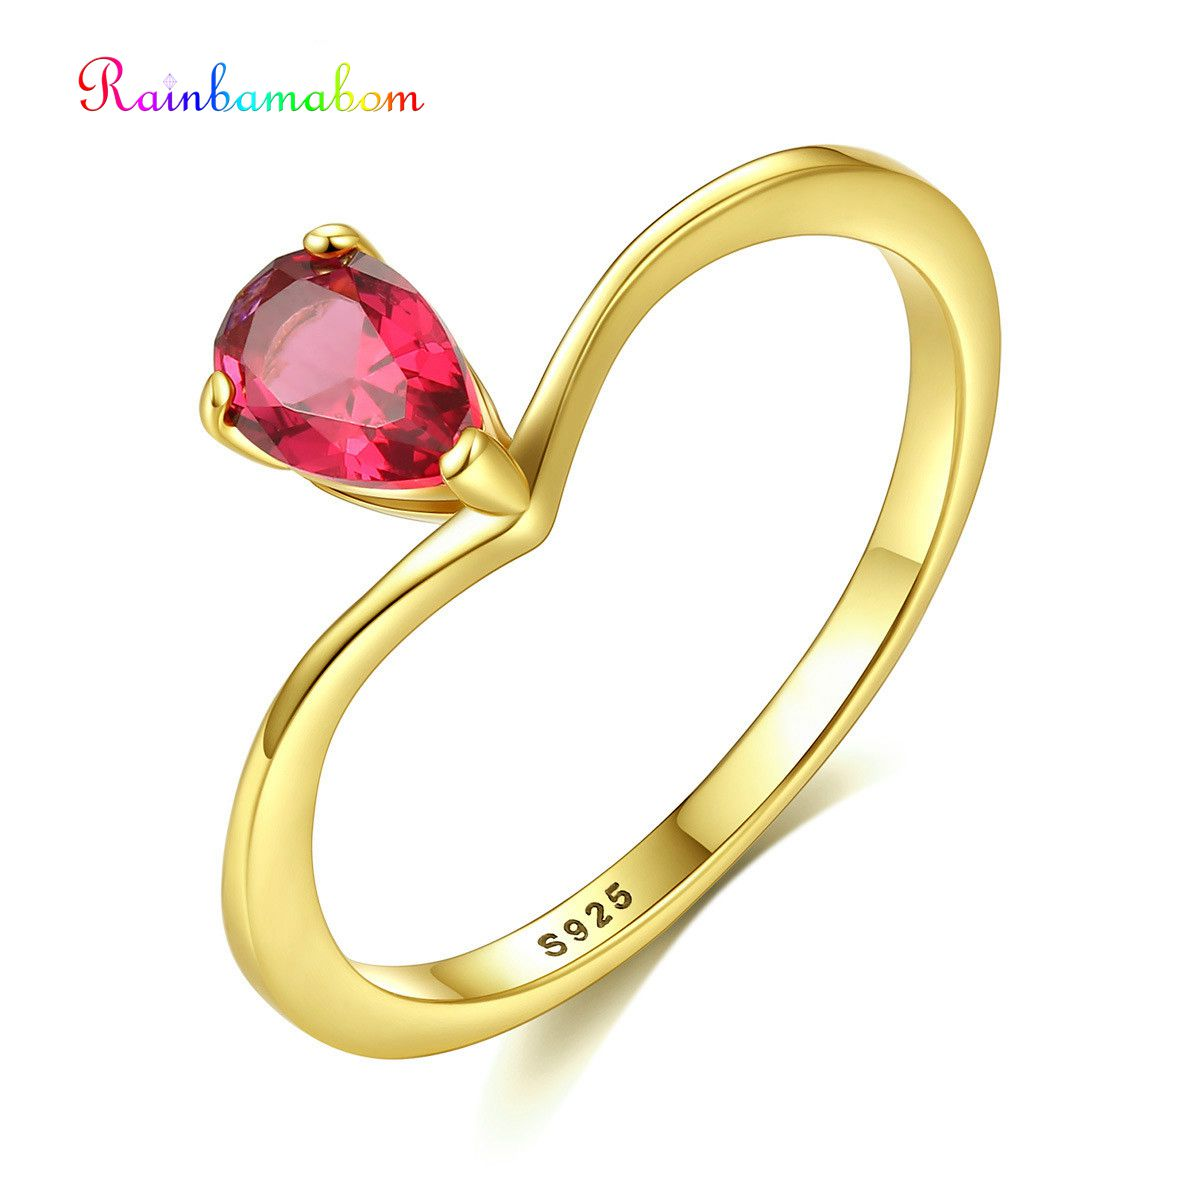 Rainbamabom 925 Solid Sterling Silver Ruby Pink Sapphire Gemstone Wedding Engagement Yellow Gold Ring Fine Jewelry Wholesale